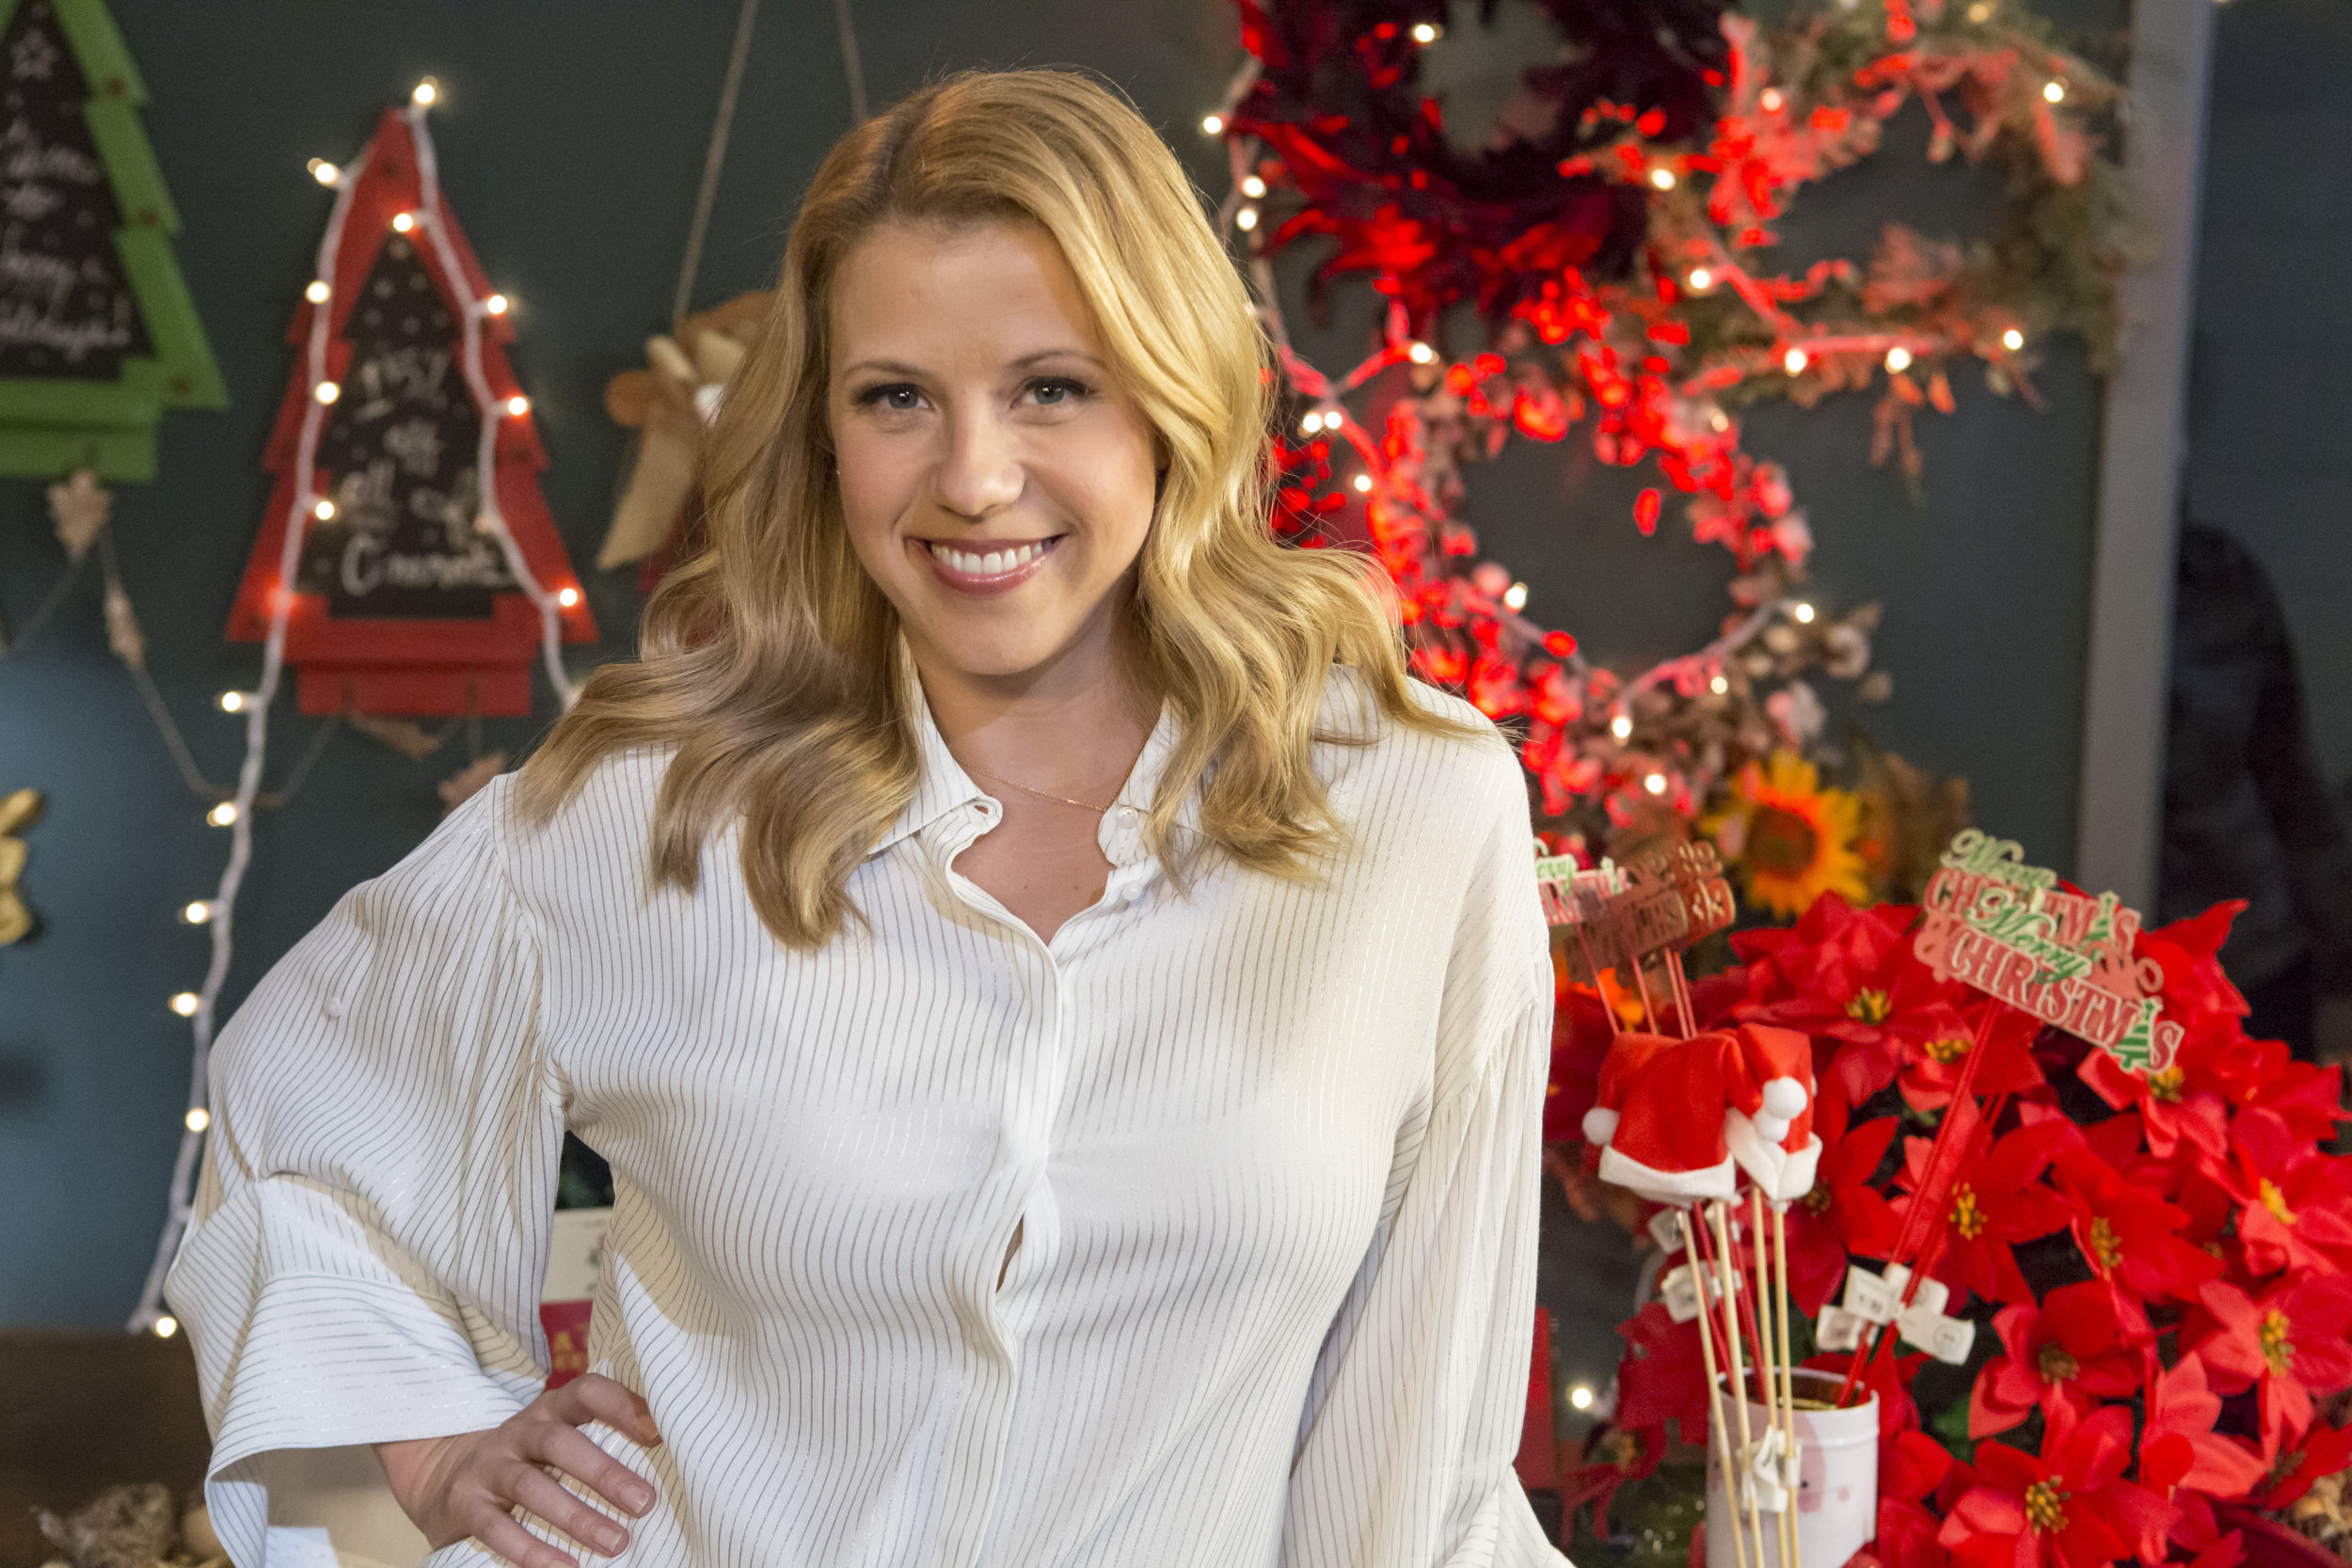 cast interviews - finding santa - jodie sweetin on making a